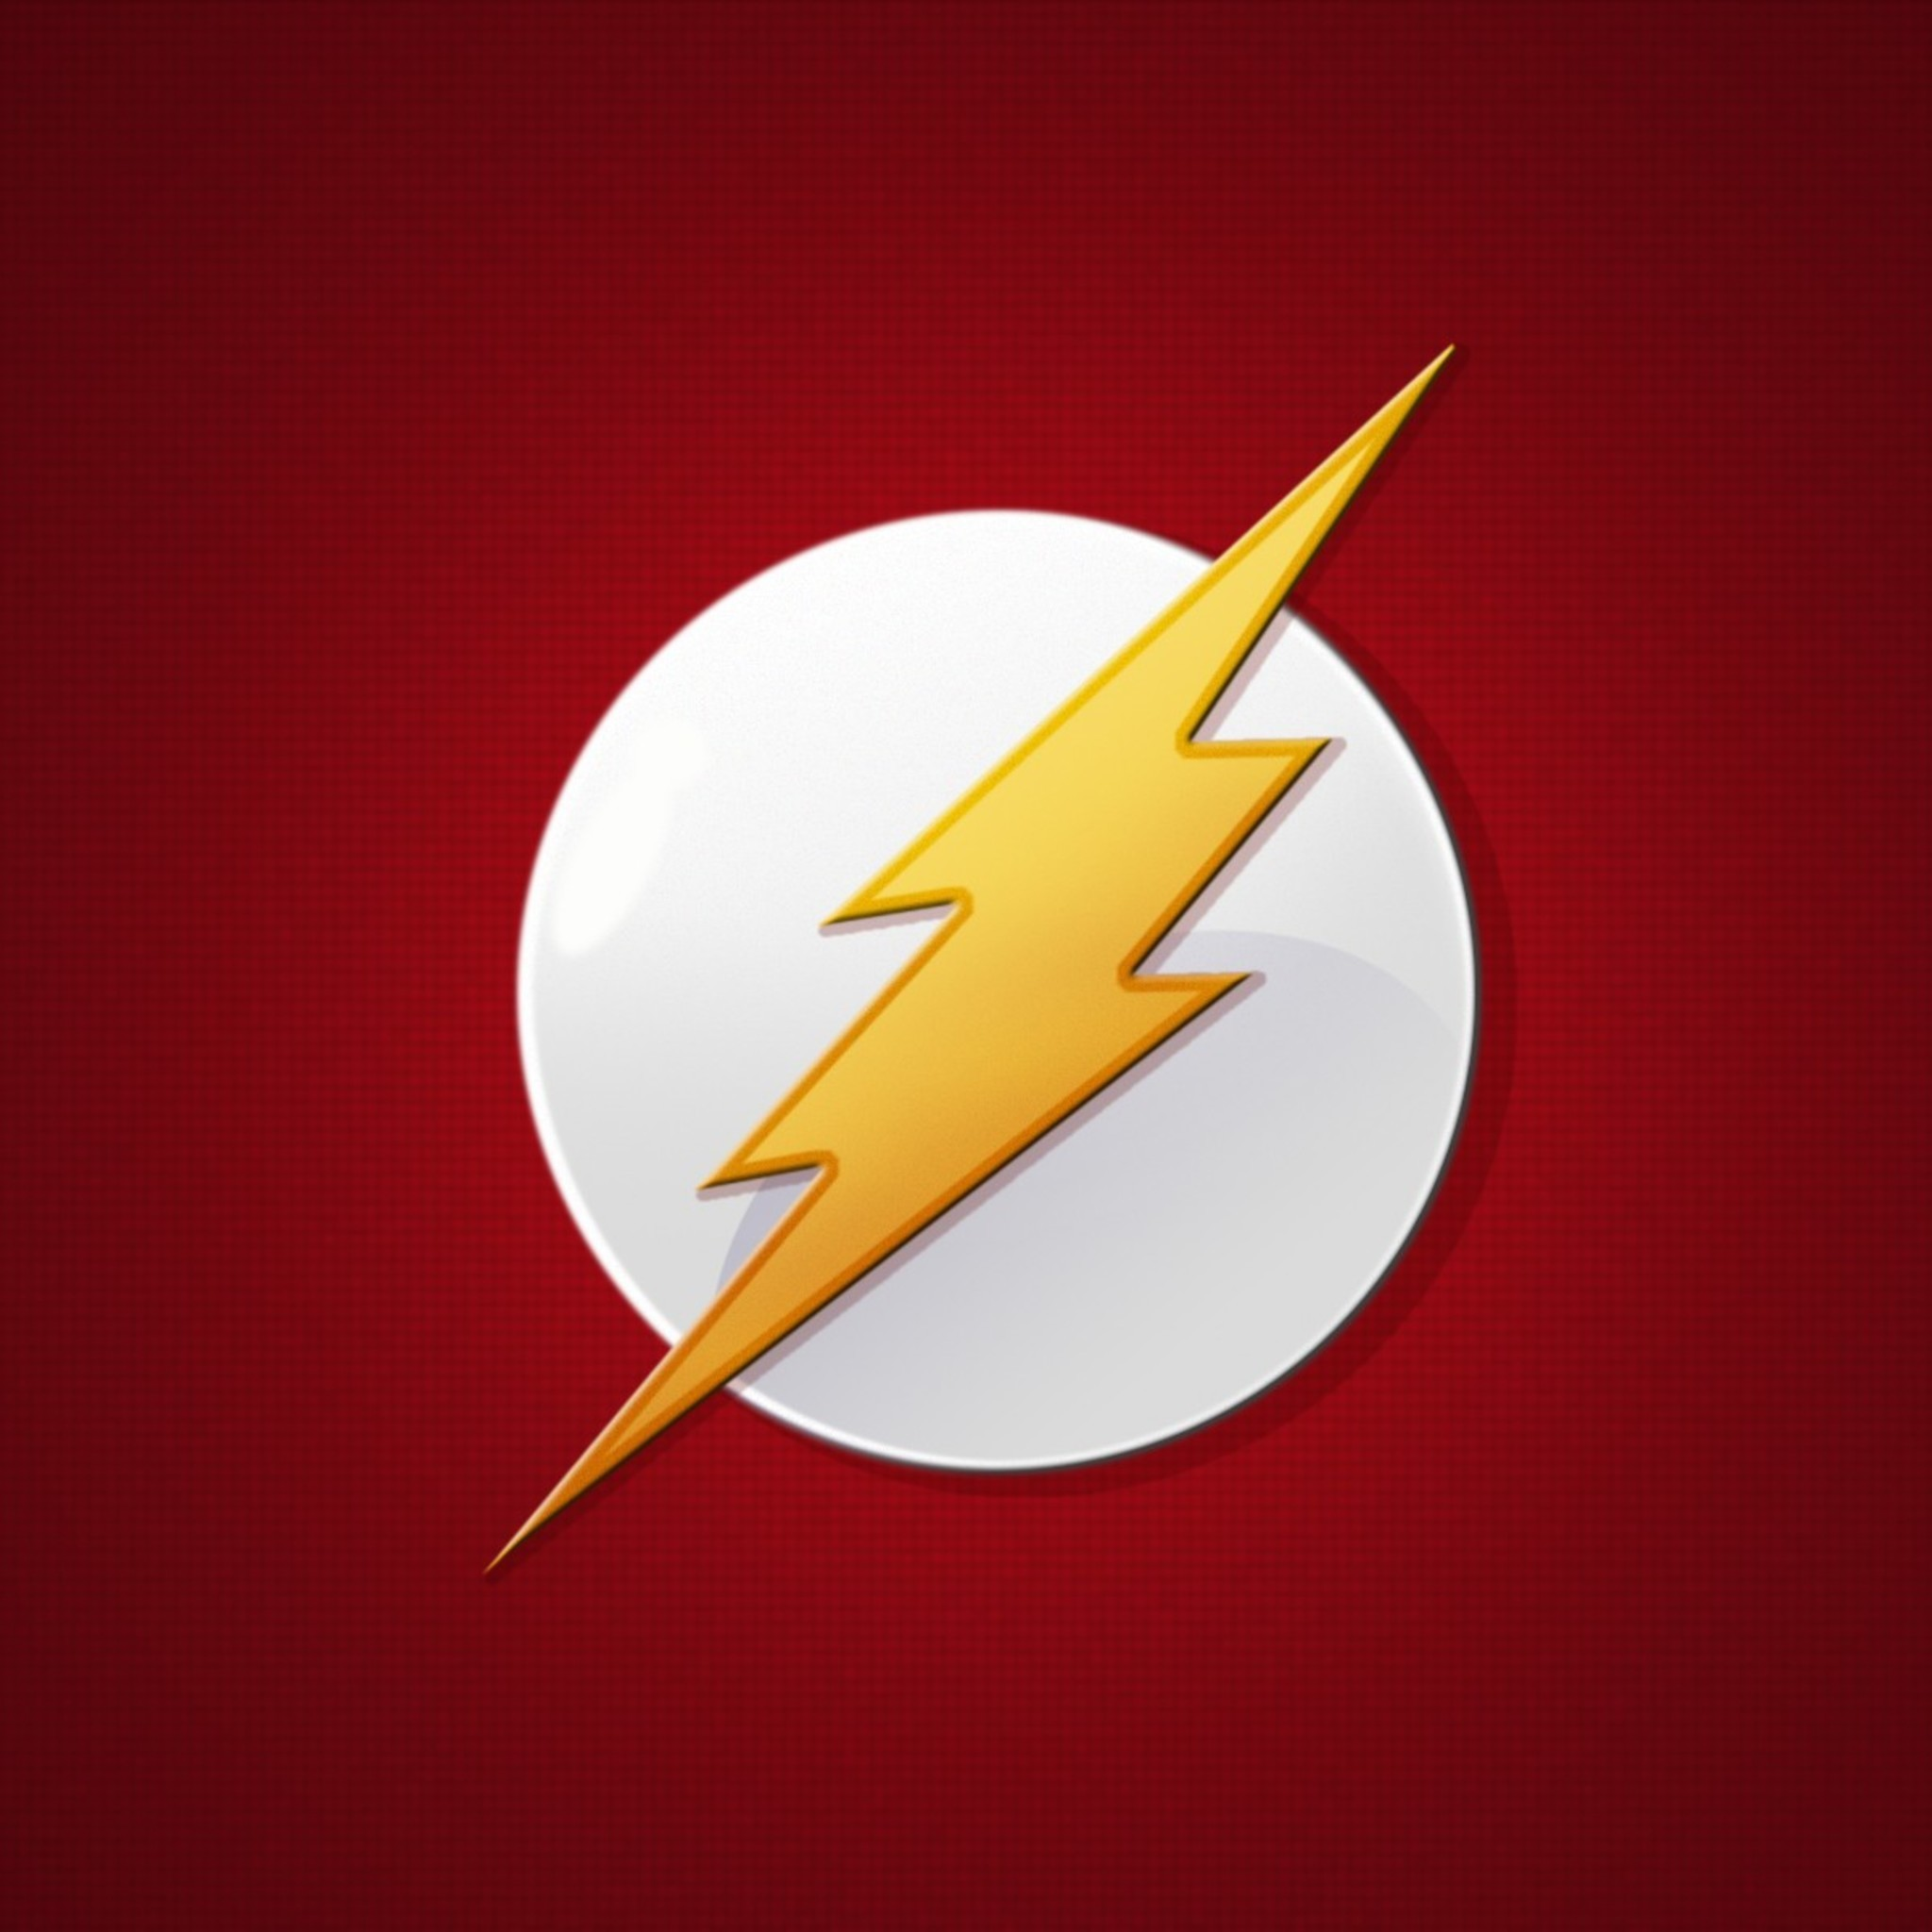 Flash Logo Hd Wallpaper For Android Gallery the-flash-logo-wallpaper.jpg …